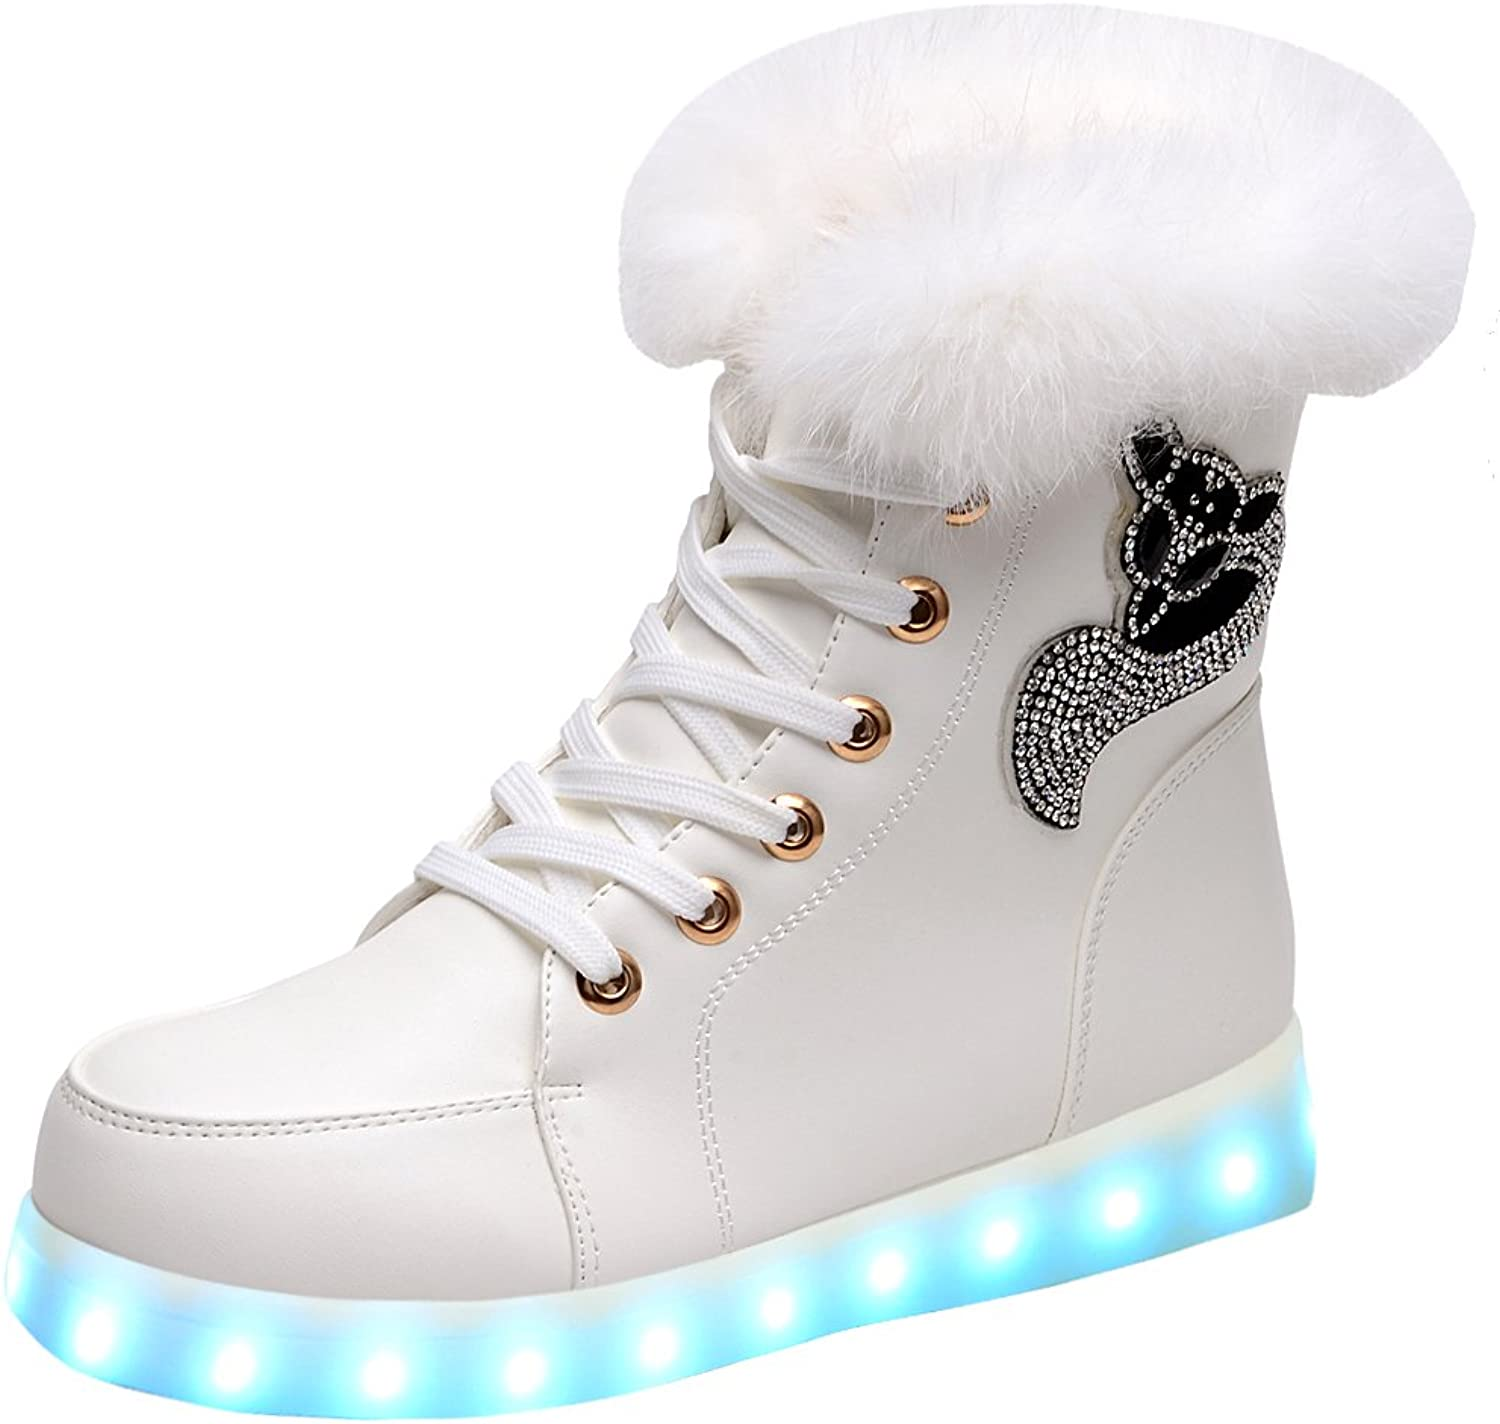 Odema Womens LED shoes High Top Sneakers Light up Winter Ankle Snow Boots